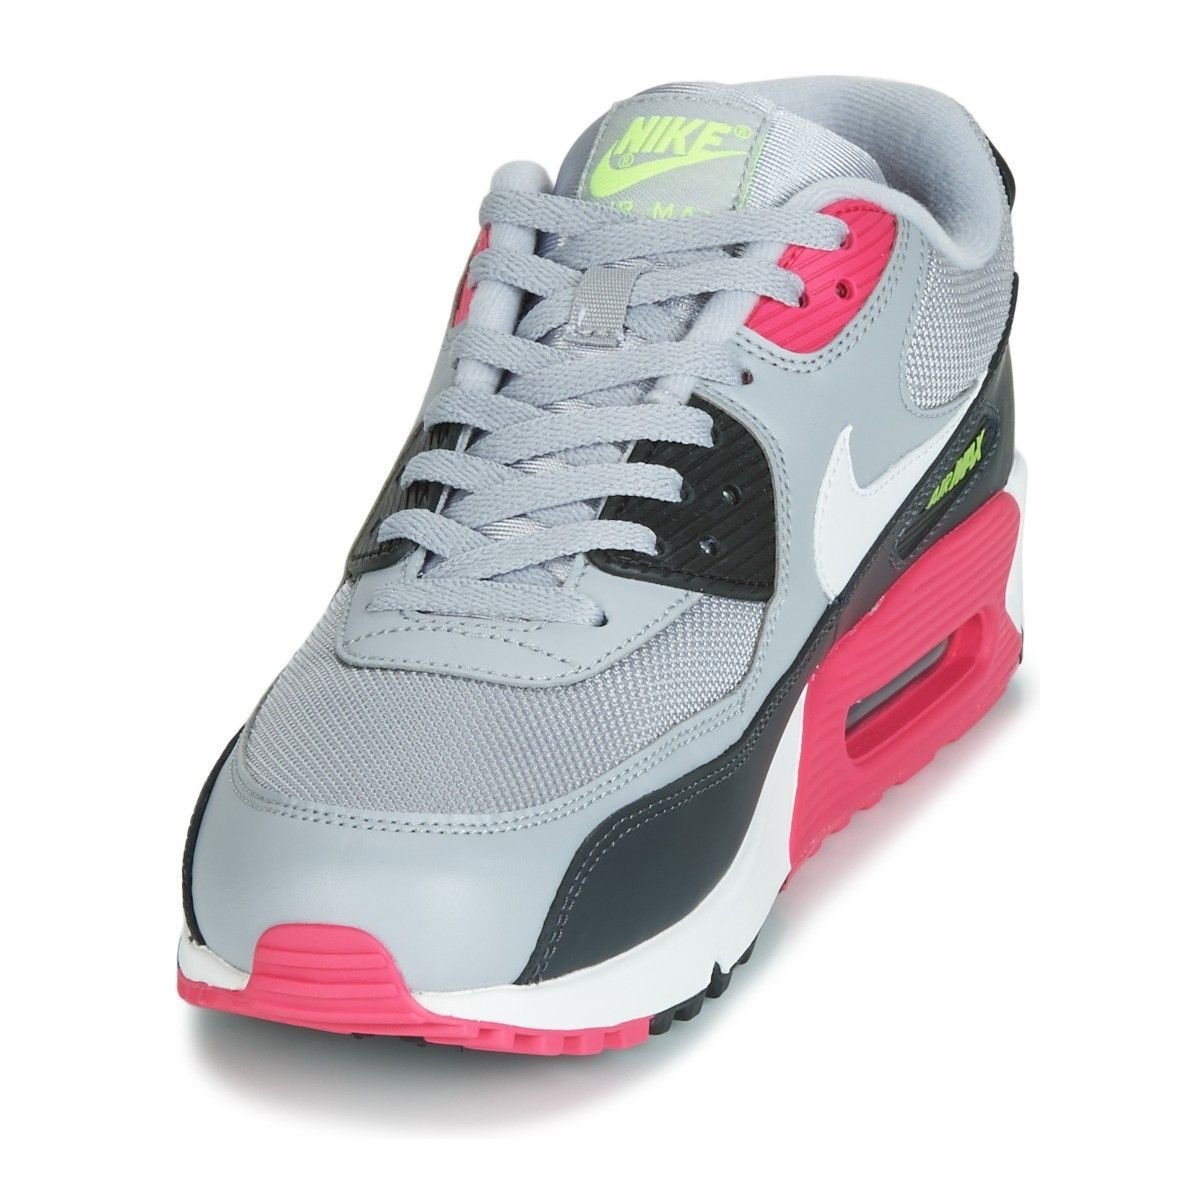 Basket Mode Air Max 90 Essential Taille : 42 12;44 12;45